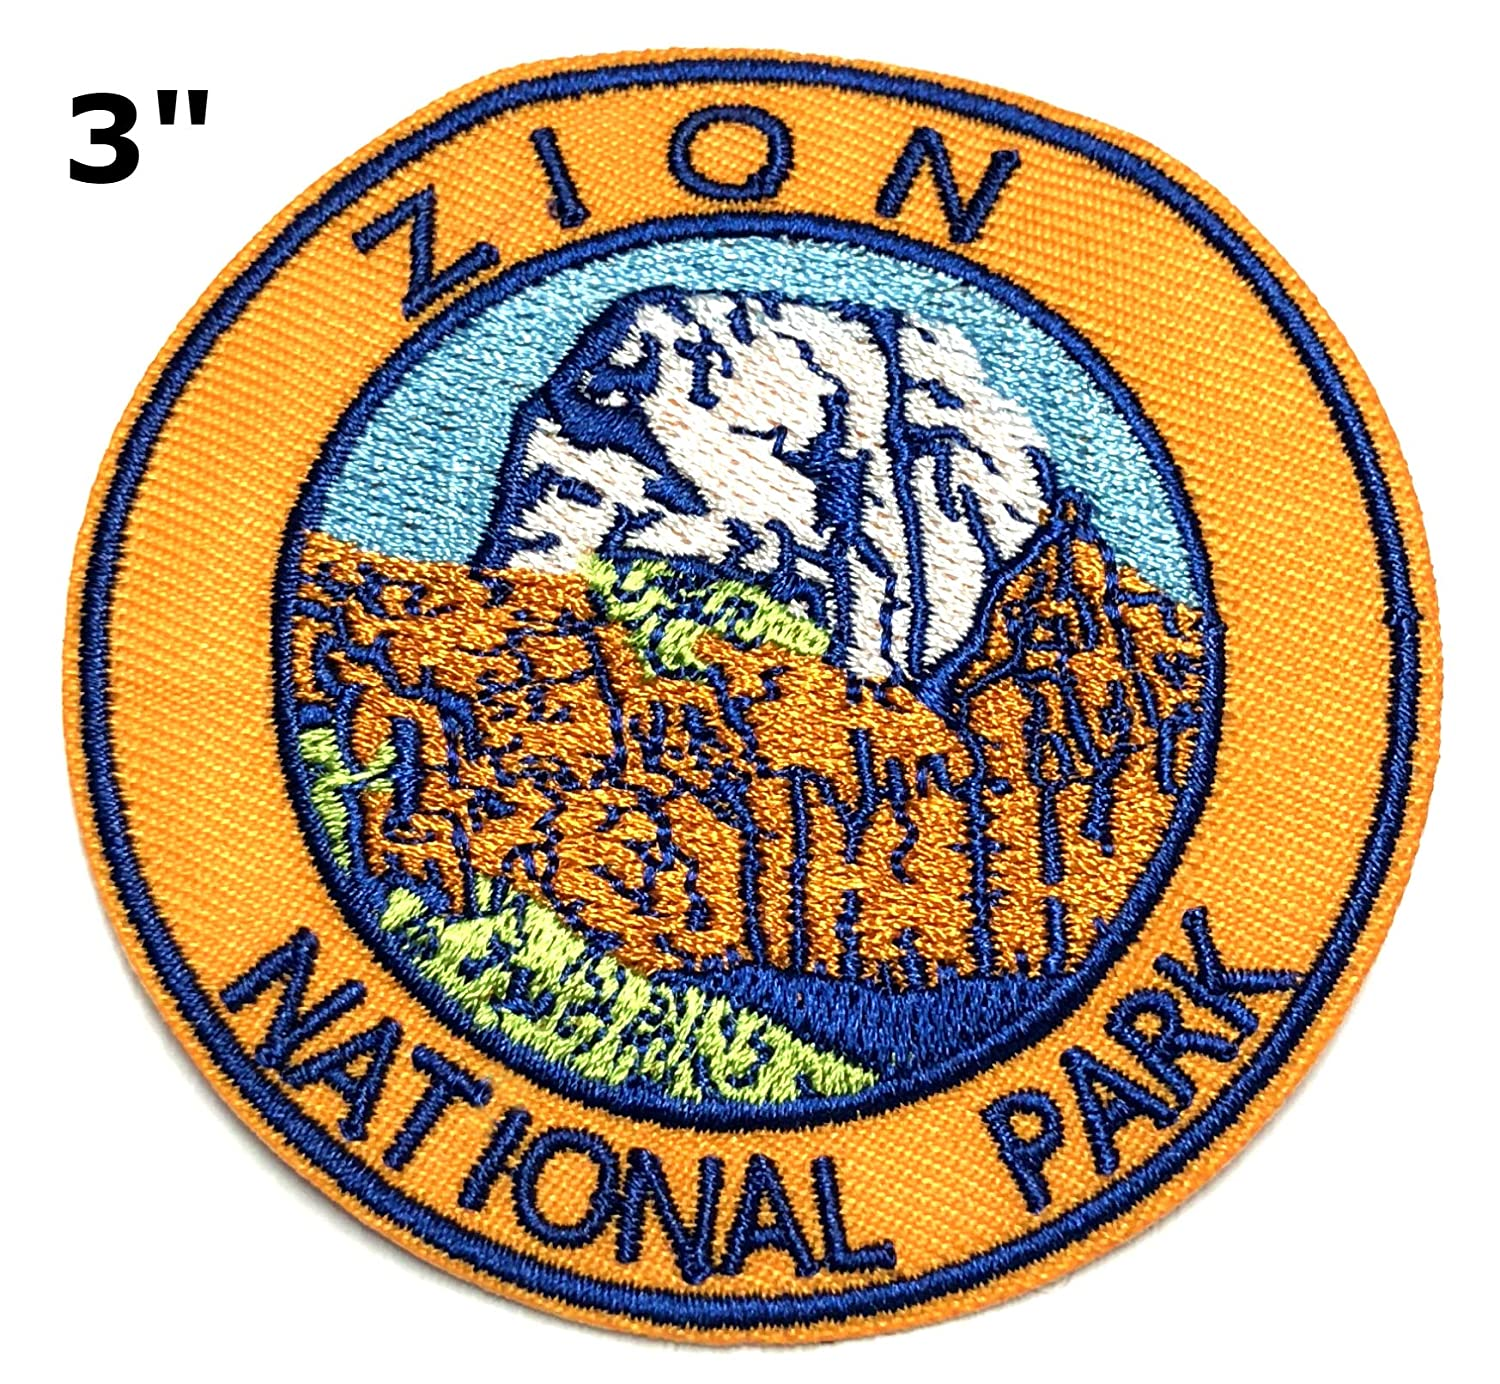 Explore Zion 3 Embroidered Patch Iron-on or Sew-on Nature Outdoor Adventure National Park Series Emblem Badge DIY Appliques Application Fabric Patches